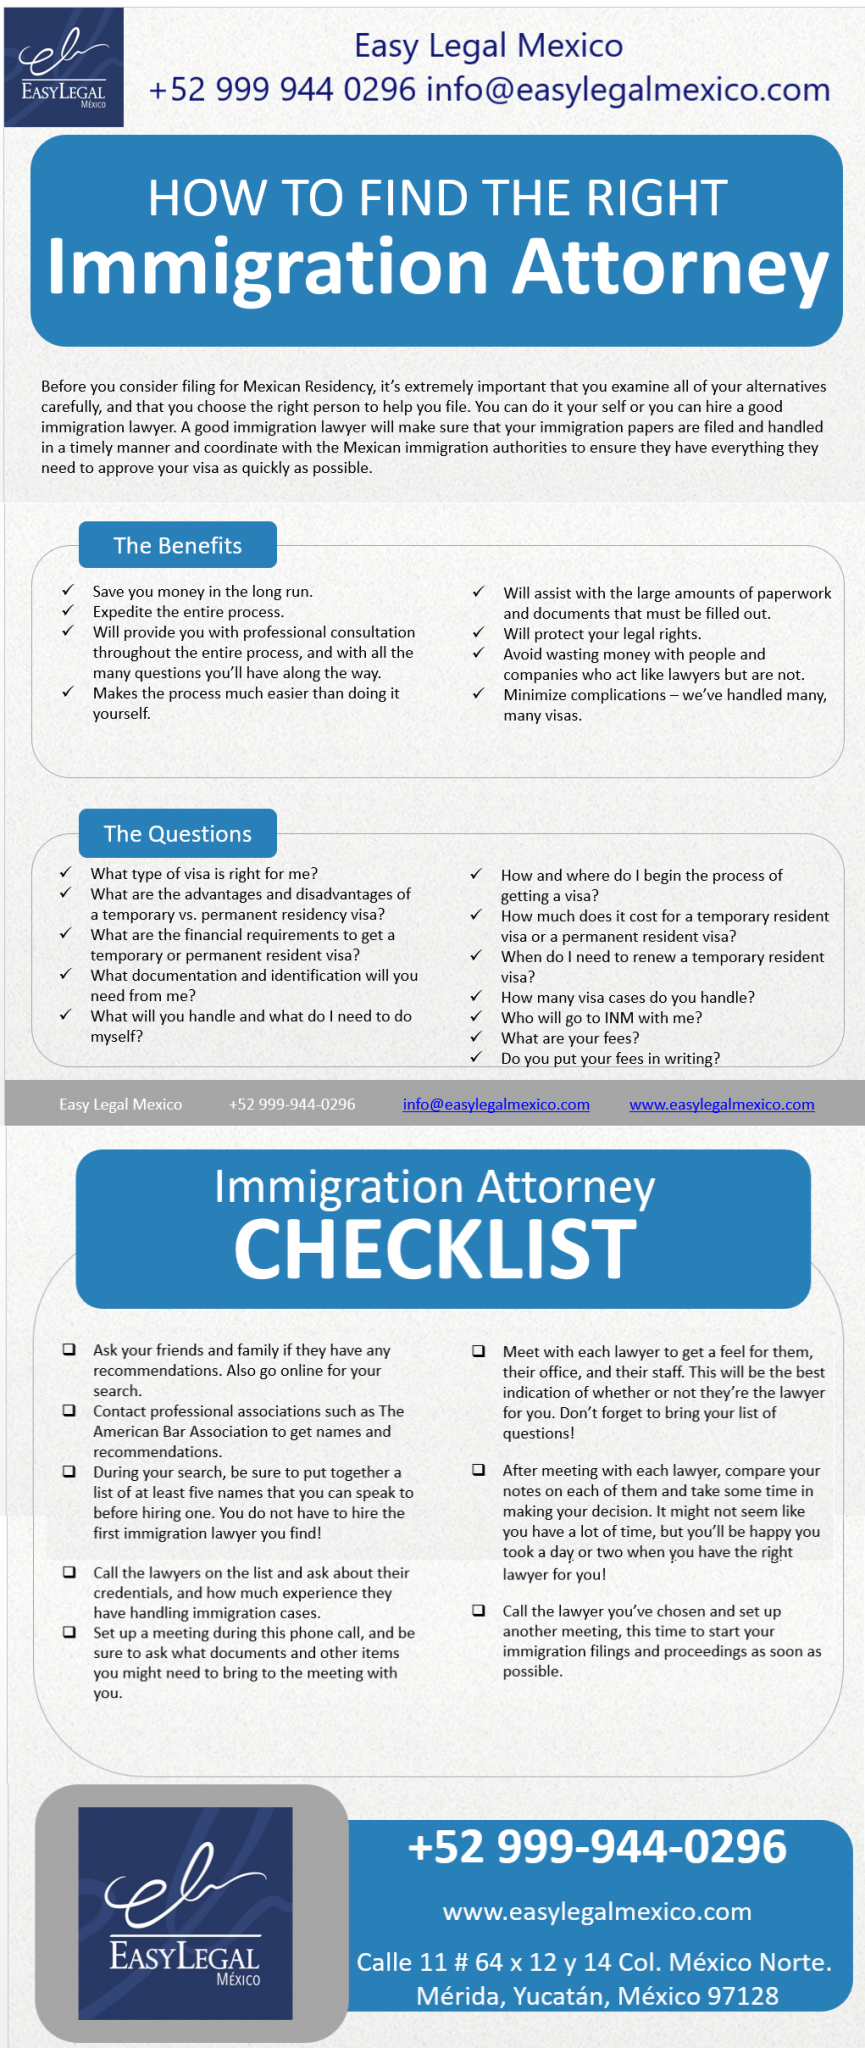 How To Find the Right Mexican Immigration Attorney